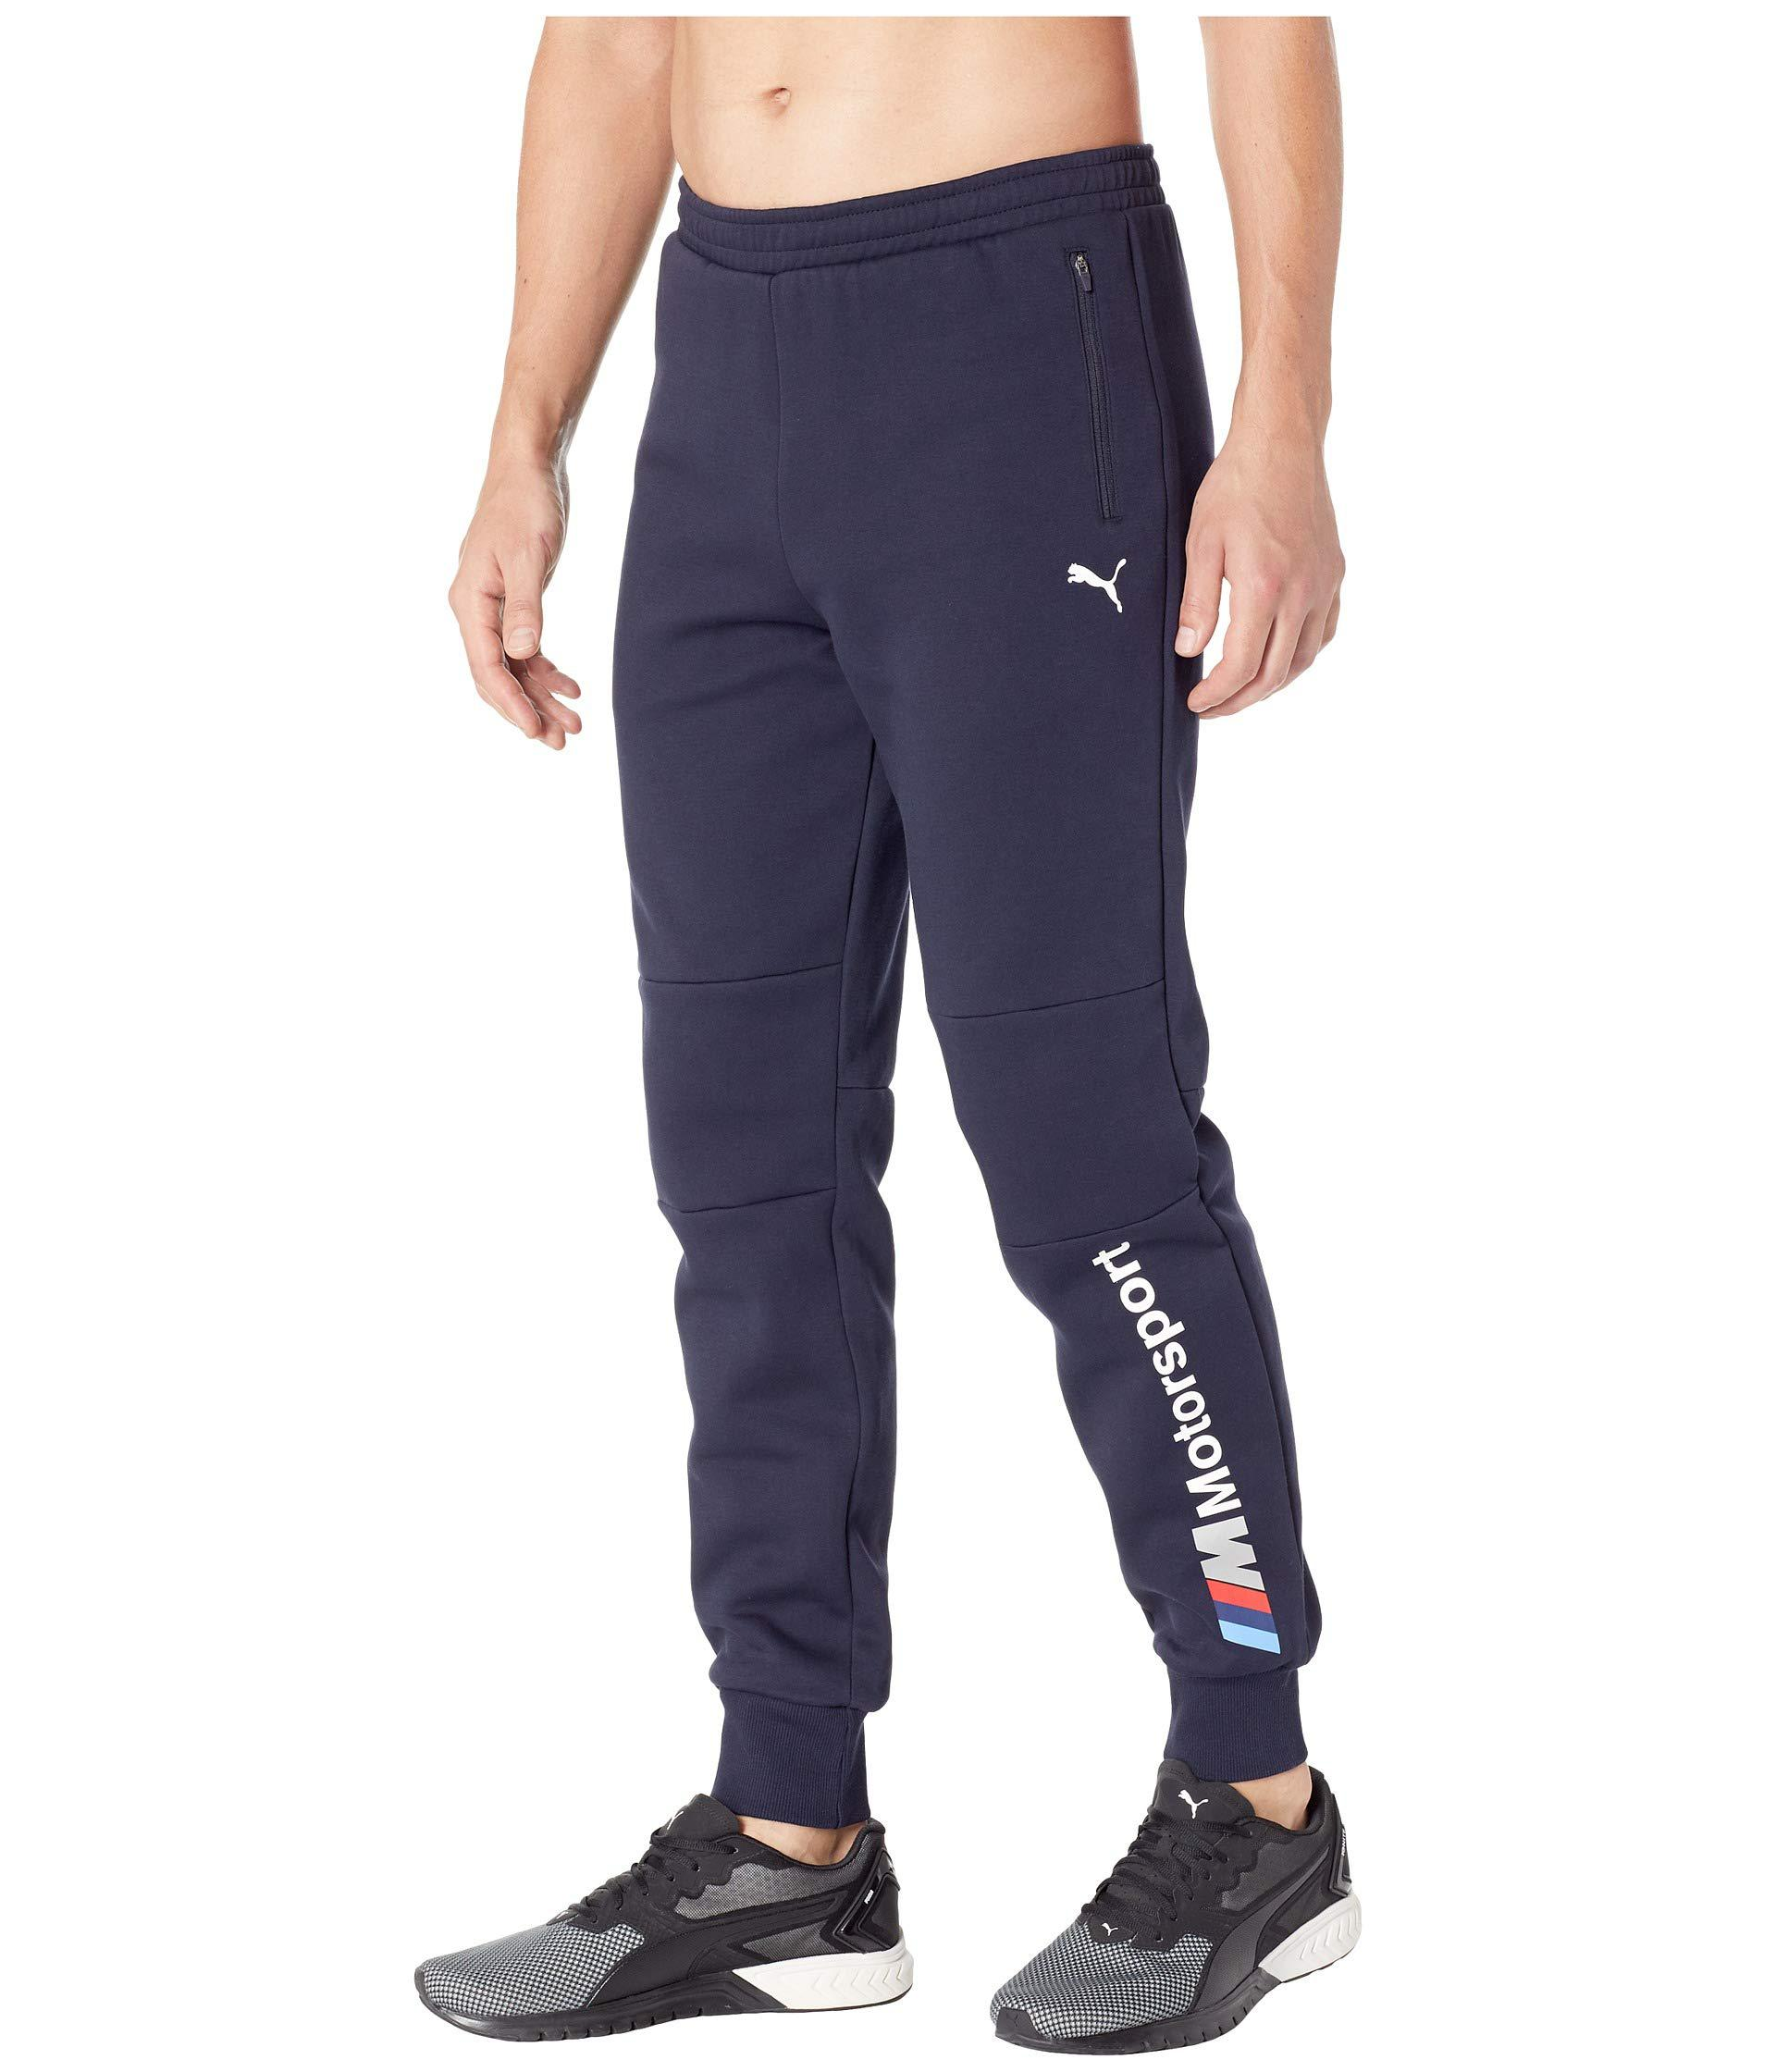 Lyst - PUMA Bmw Mms Sweatpants (anthracite) Men s Workout in Blue for Men 855560d35e95